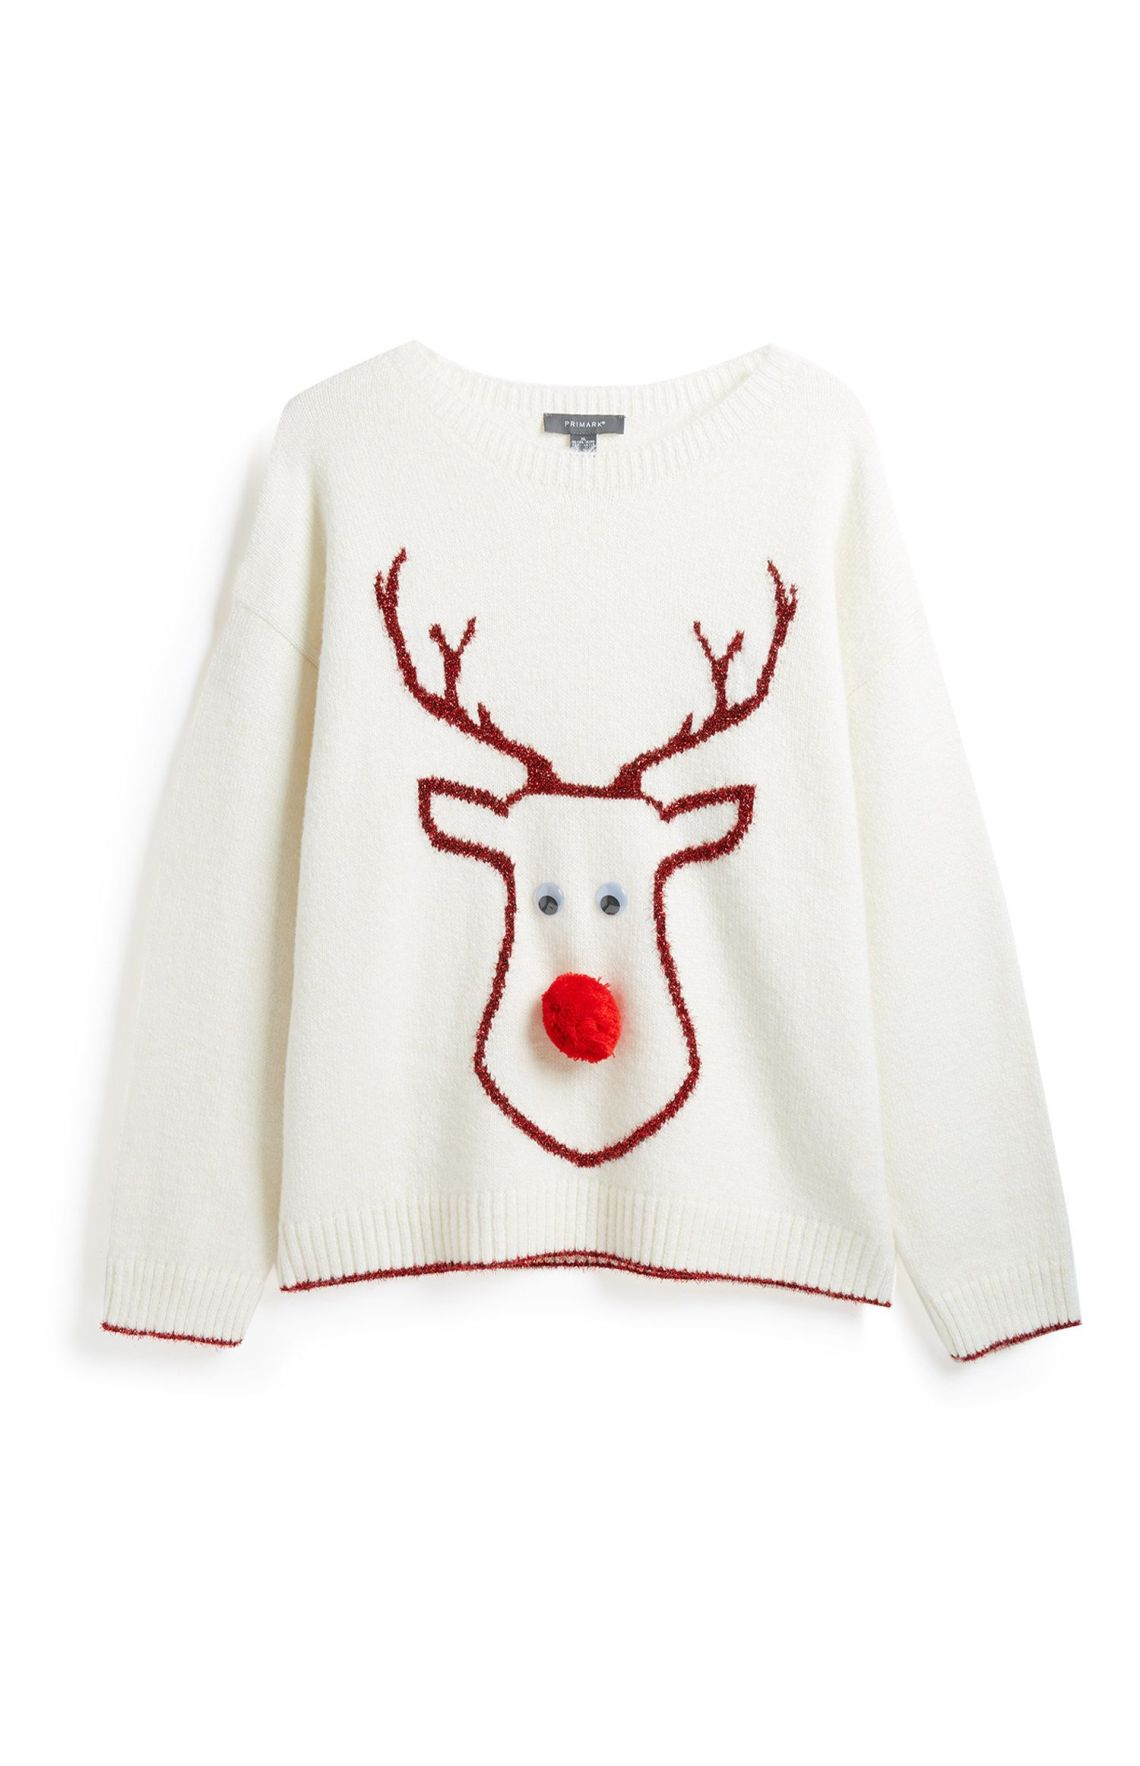 Upgrade the classic rudolf Xmas knit with googly eyes and a pompom nose. Love.Primark, £12.